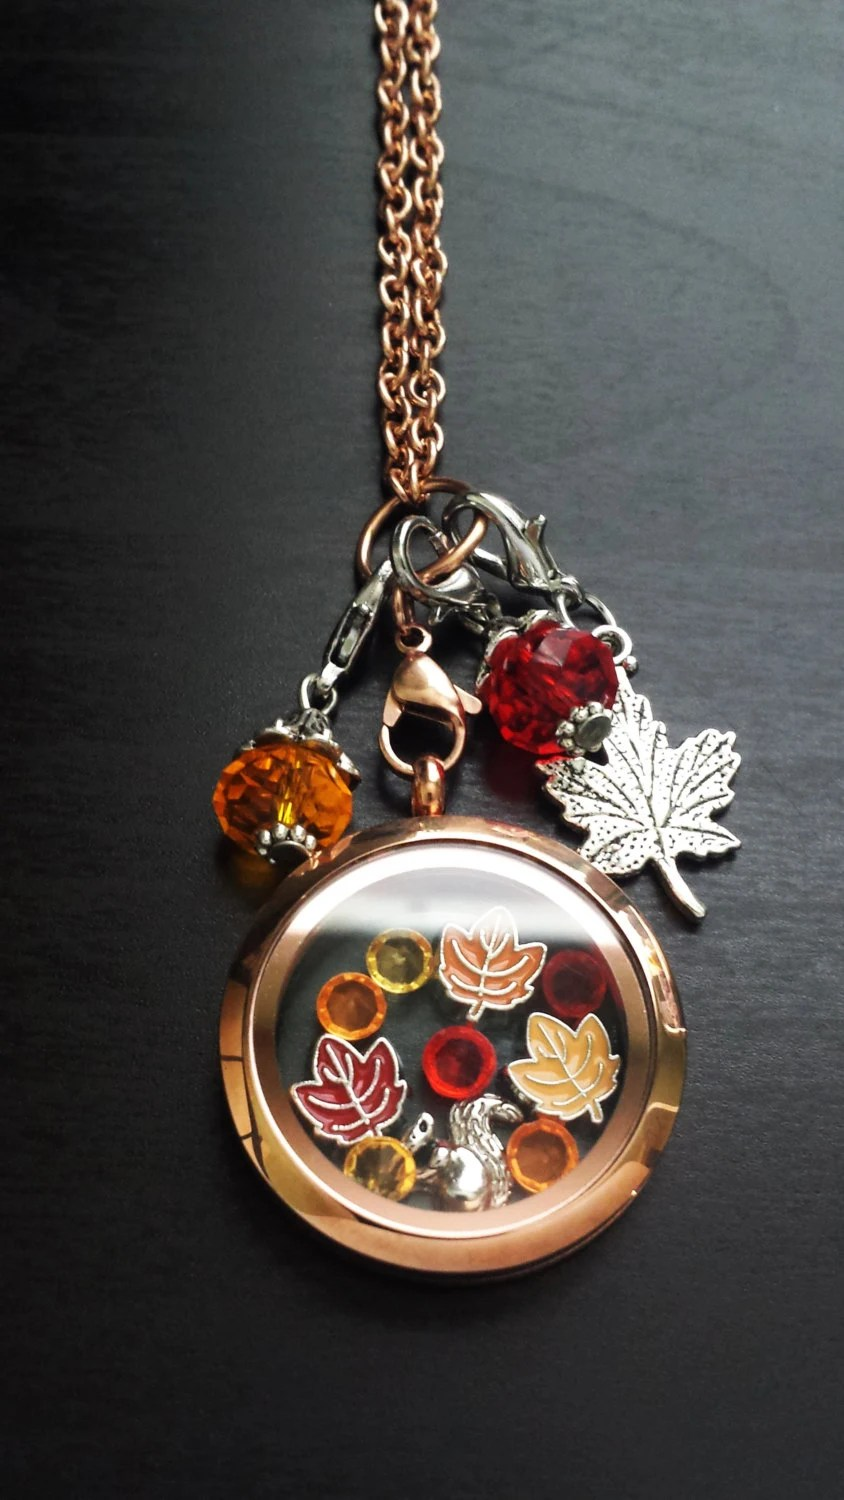 Fall Floating Charm Locket Necklaceincludes Locket Chain